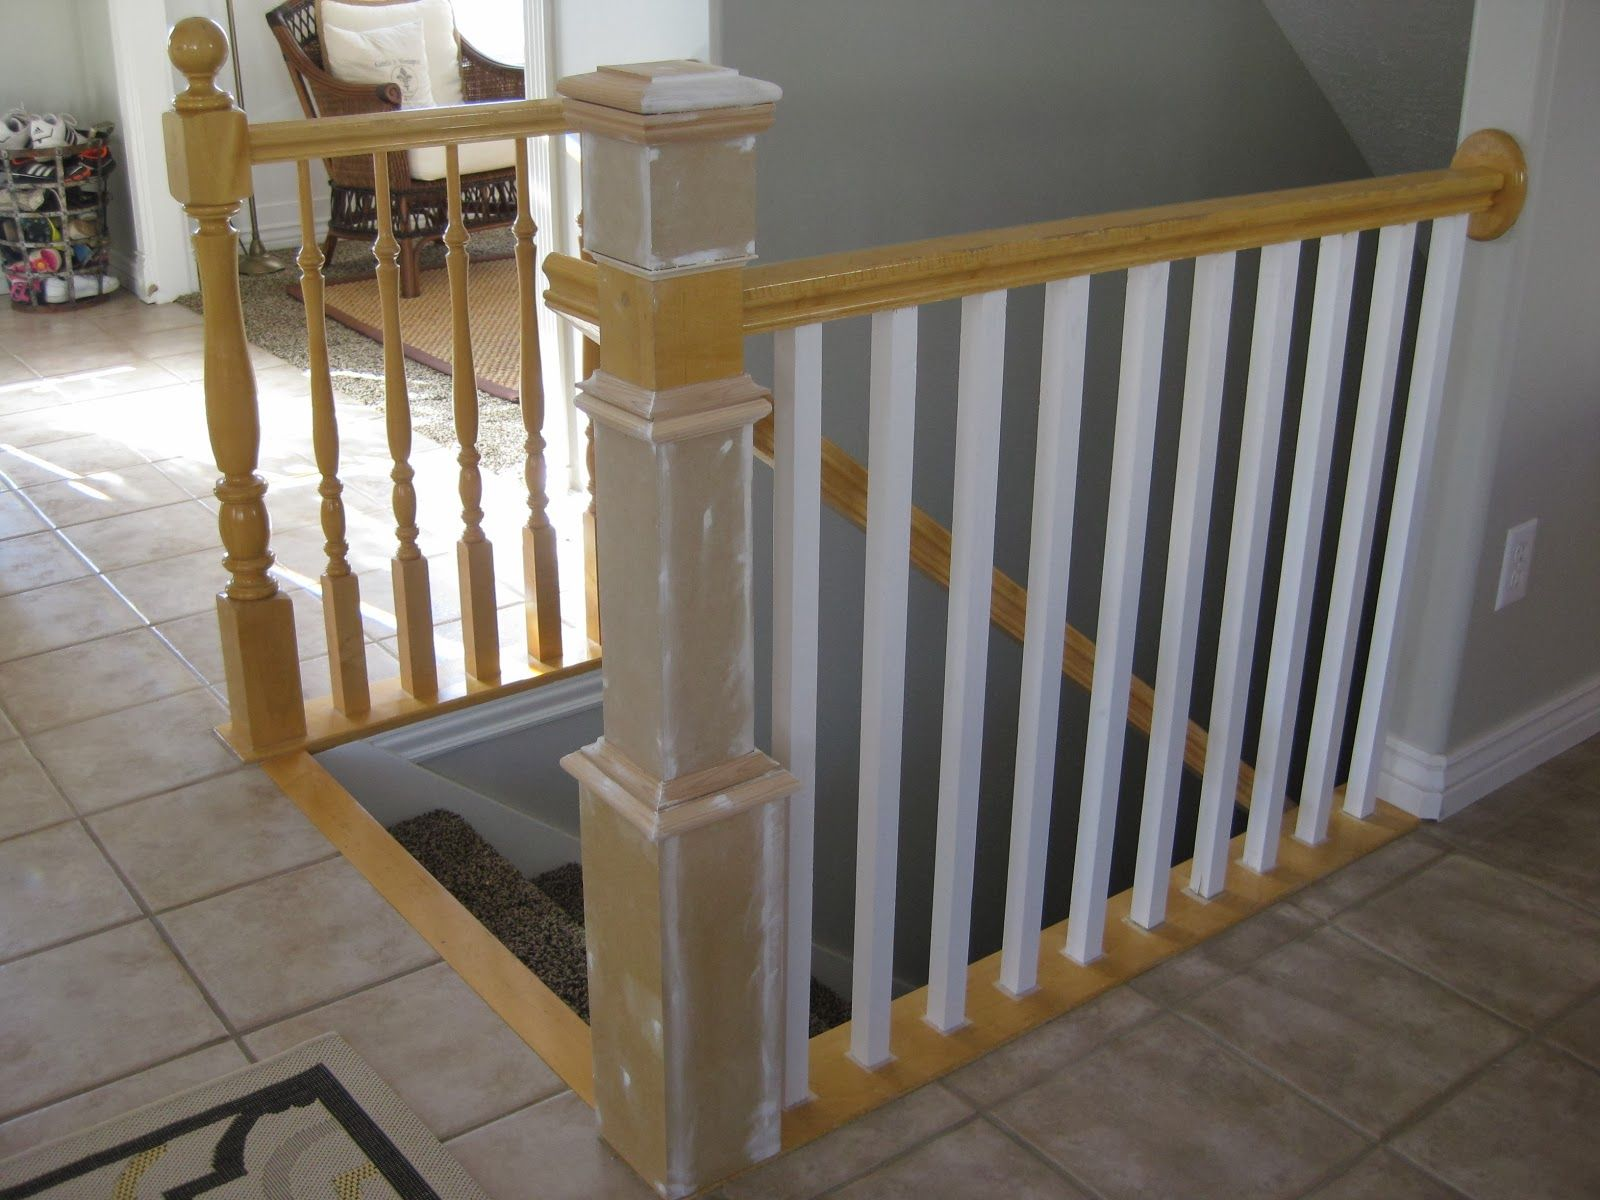 Replace Stair Banister Spindles And Newel Post Diy Tda | Installing Newel Post And Spindles | Stair Parts | Staircase | Stair Banister | Iron Stair | Wrought Iron Spindles